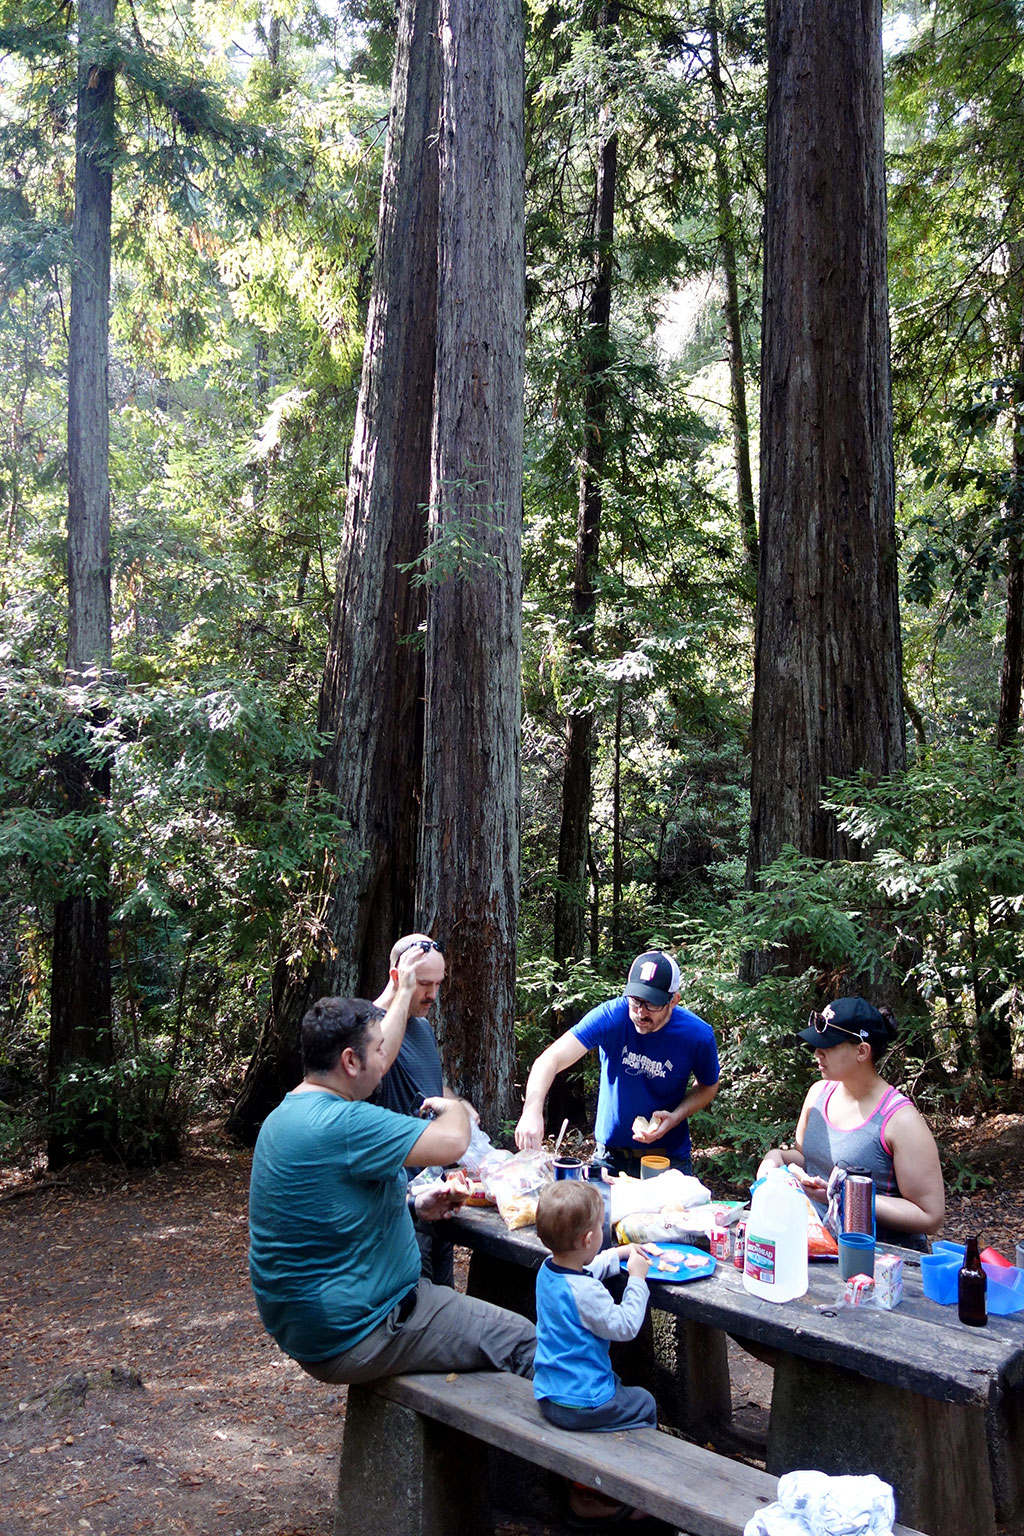 Picnic at Portola redwoods